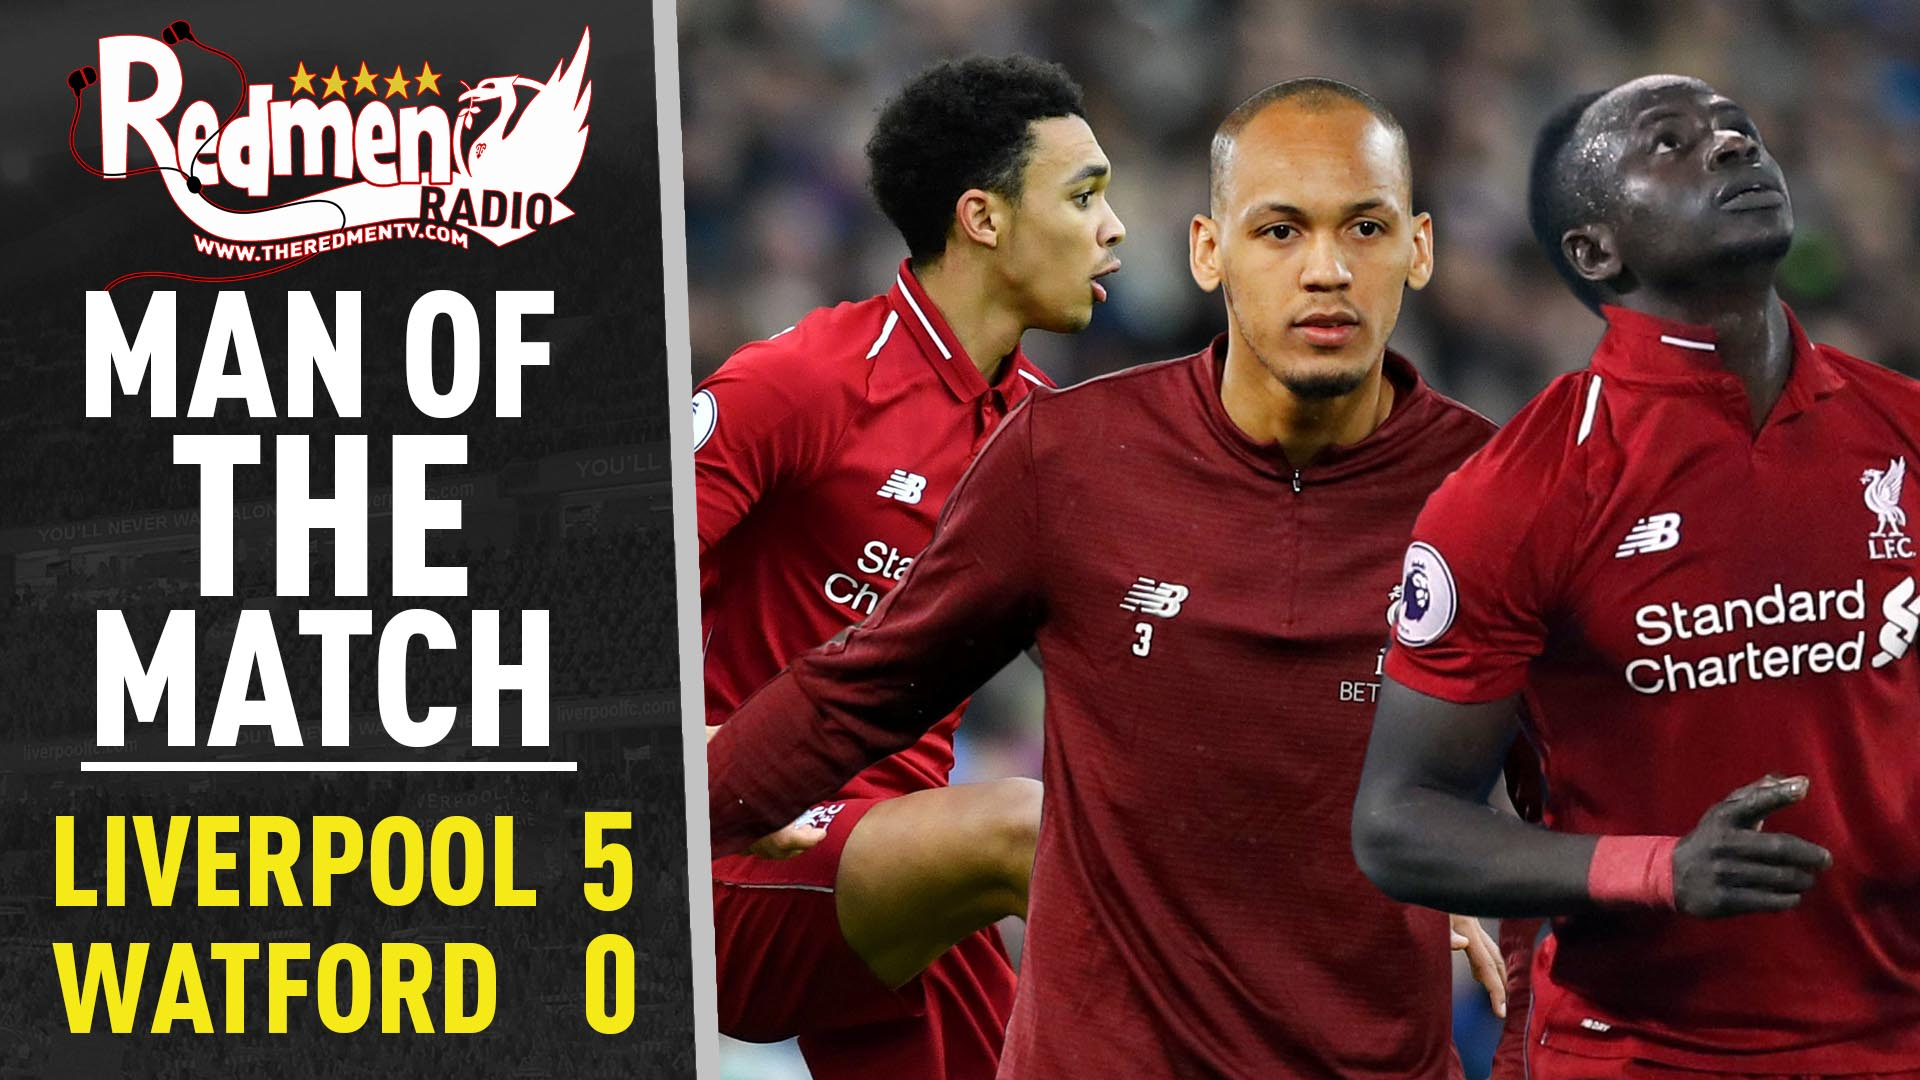 Liverpool 5-0 Watford | Man of the Match Podcast - The Redmen TV